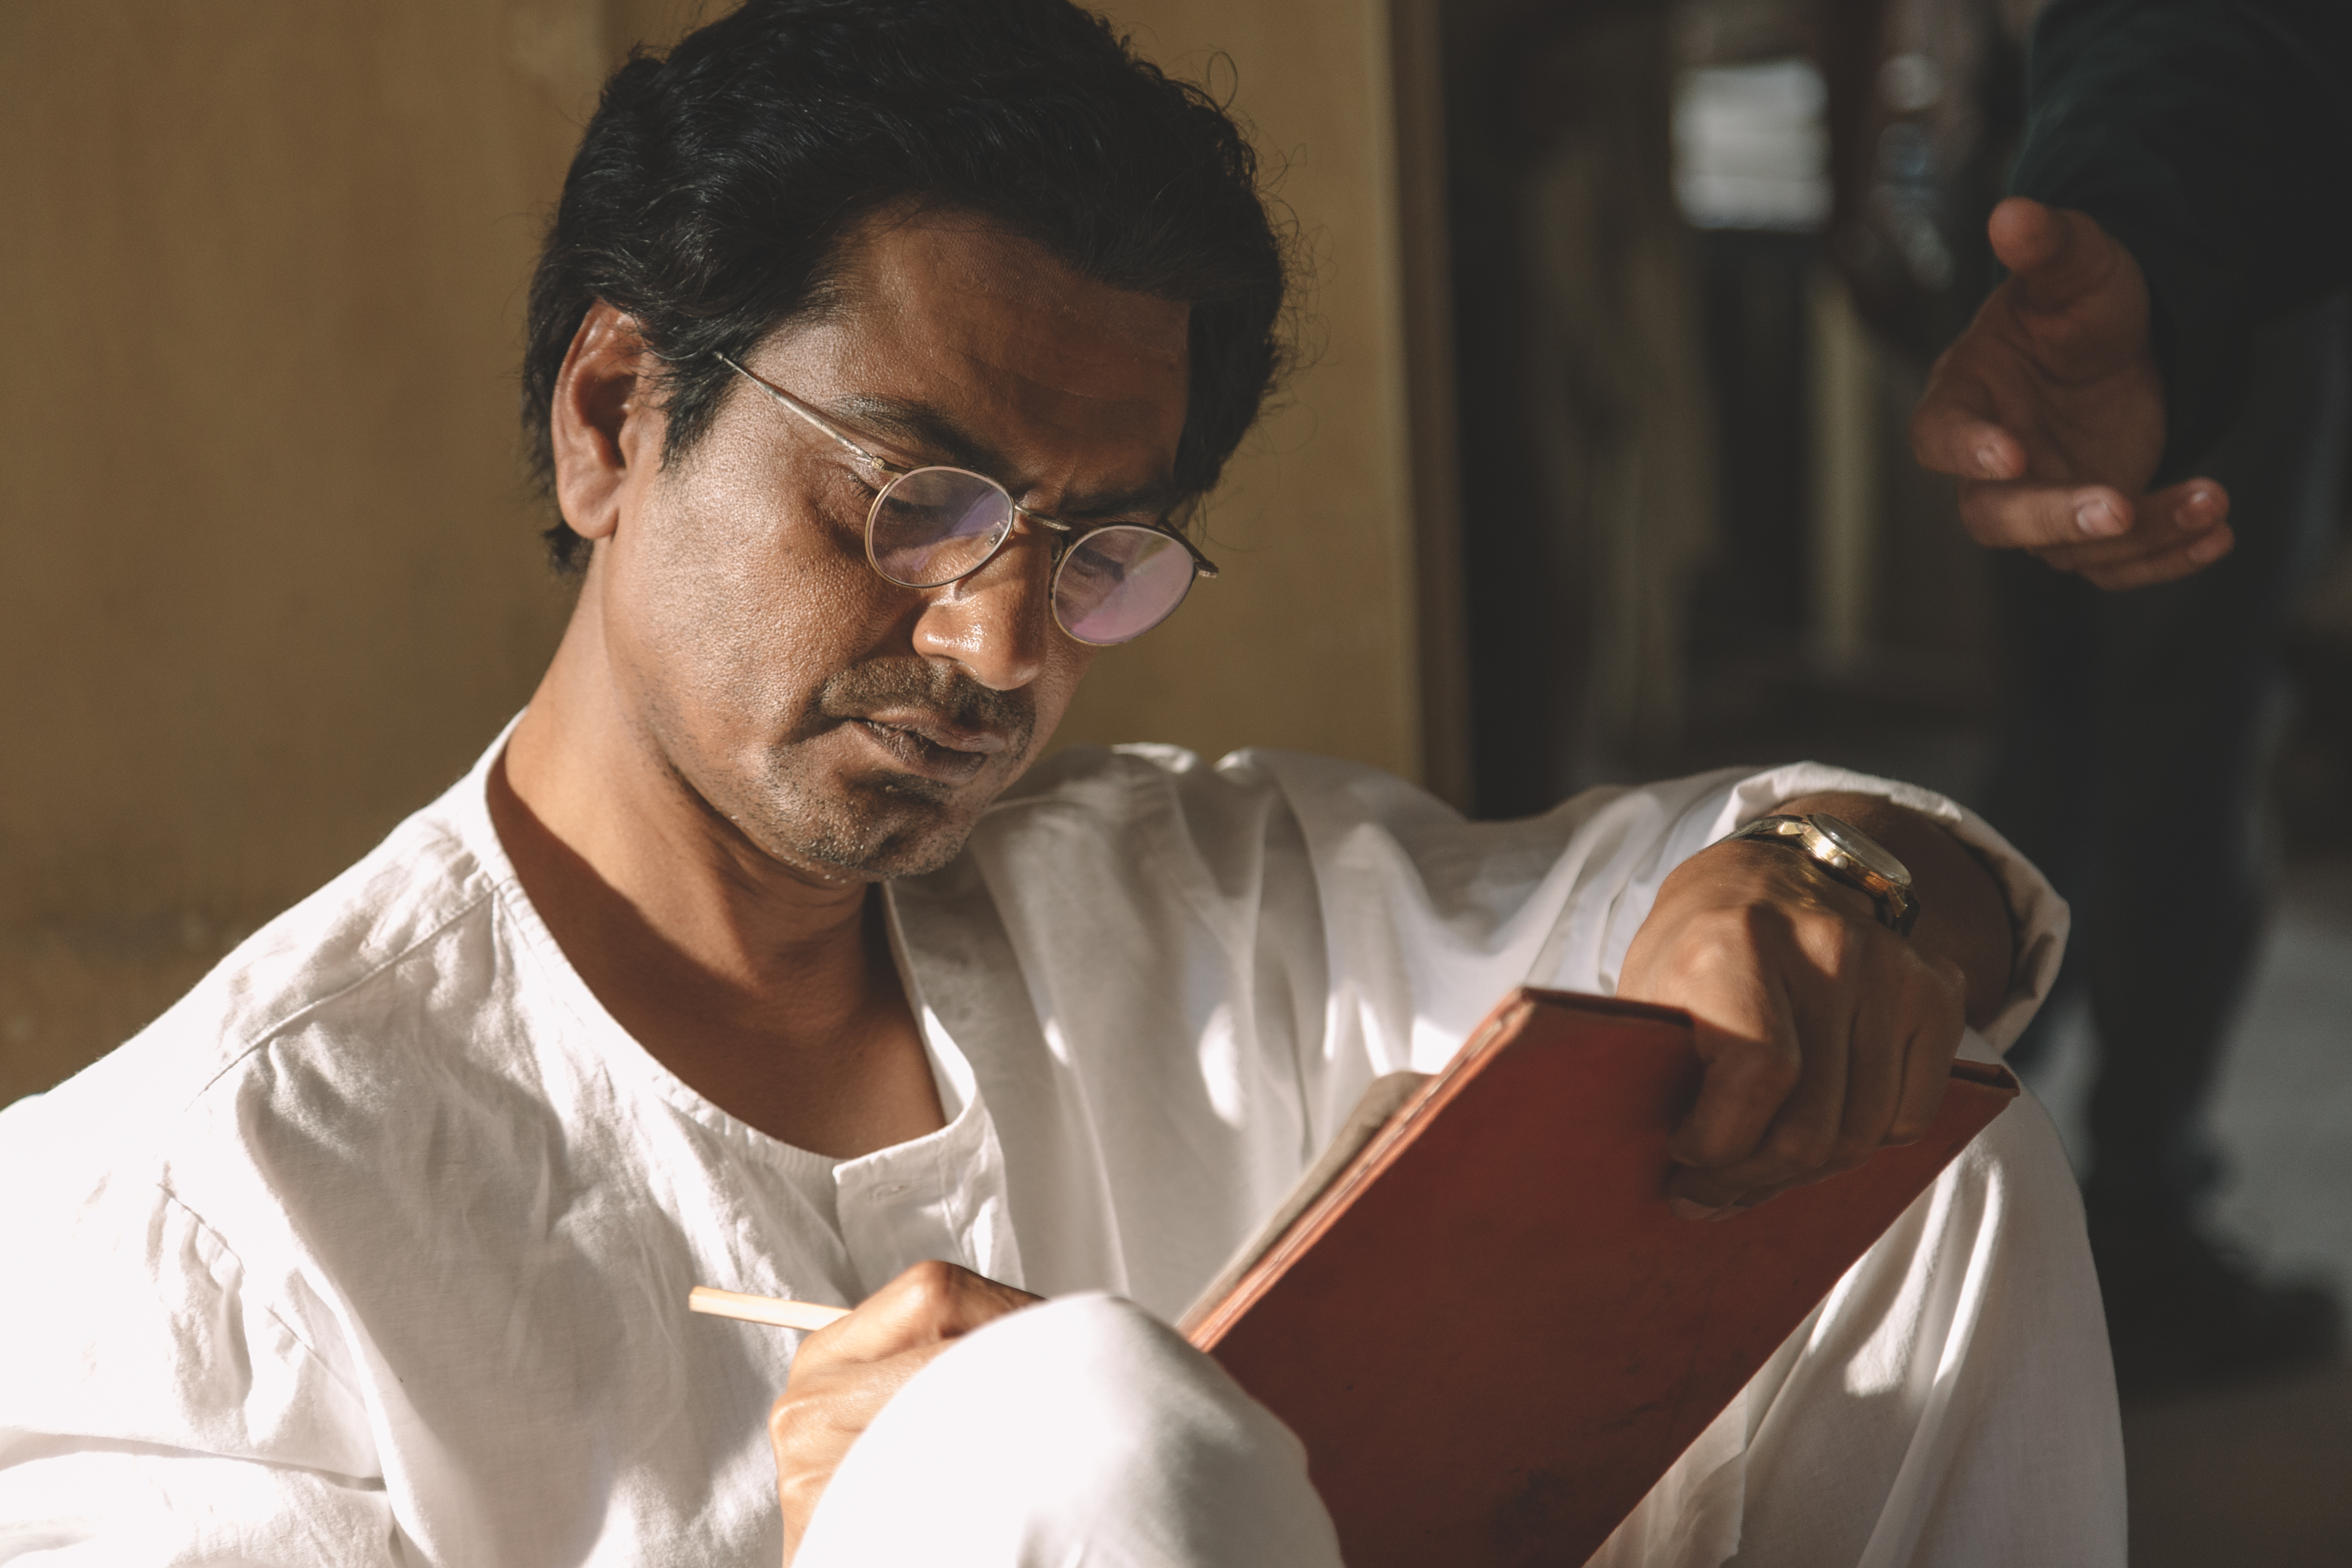 Nawazuddin Siddiqi, immersed in his role as Sadat Hassan Manto. Photo courtesy: Viacom 18